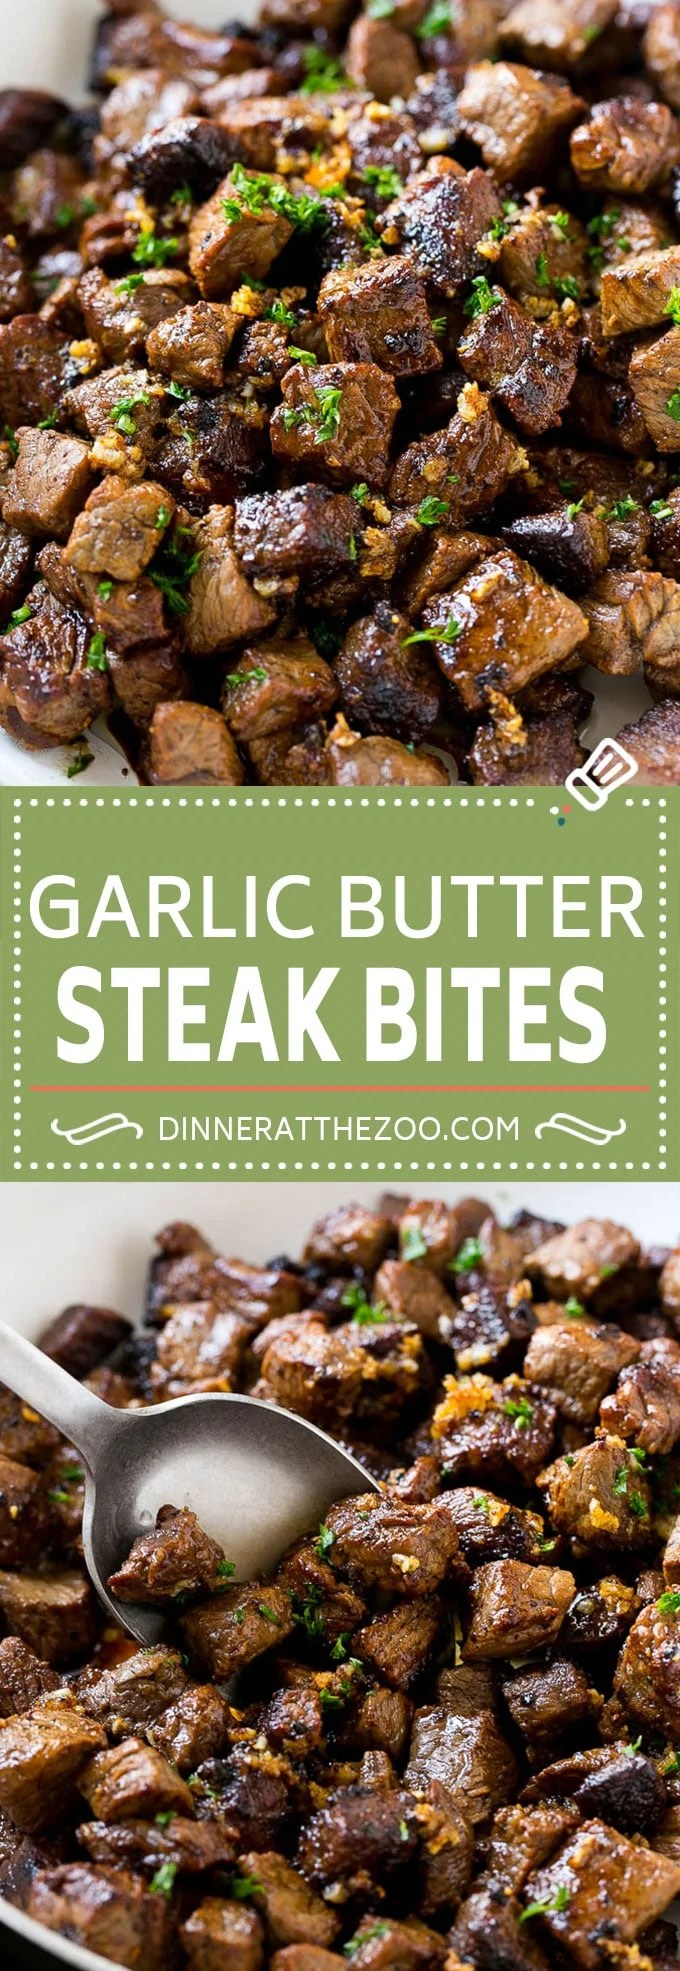 Tremendous Garlic Butter Recipe Garlic Steak Sirloin Steak Recipe Appetizer Steak Bites Steak Bites Butter Fast Nausea Butter Fast Reddit Beef Garlic Butter Dinner At Zoo Beef nice food Beef And Butter Fast